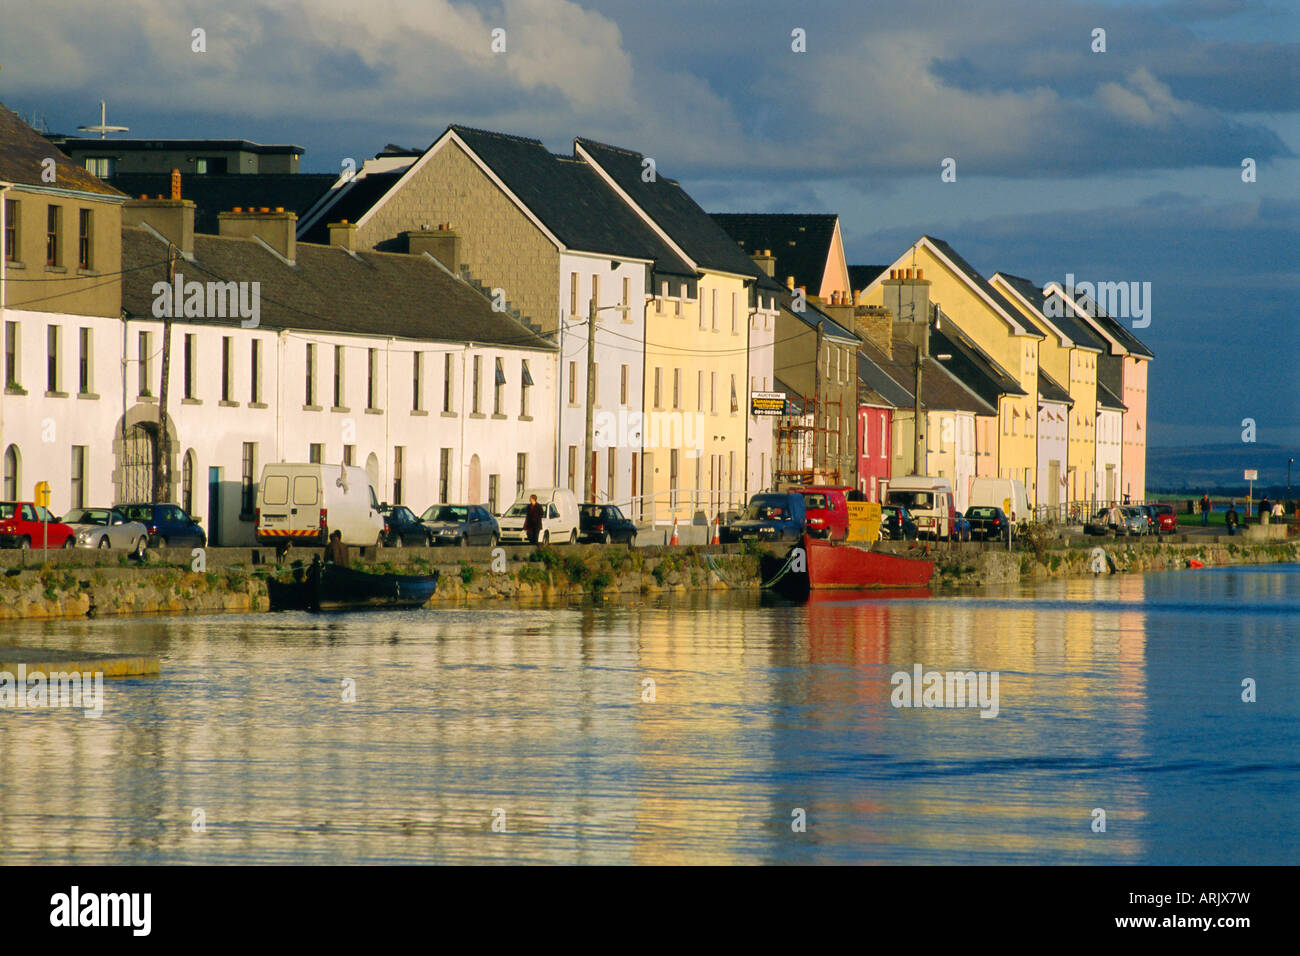 Long Walk view of Claddagh Quay, Galway Town, Co Galway, Ireland - Stock Image